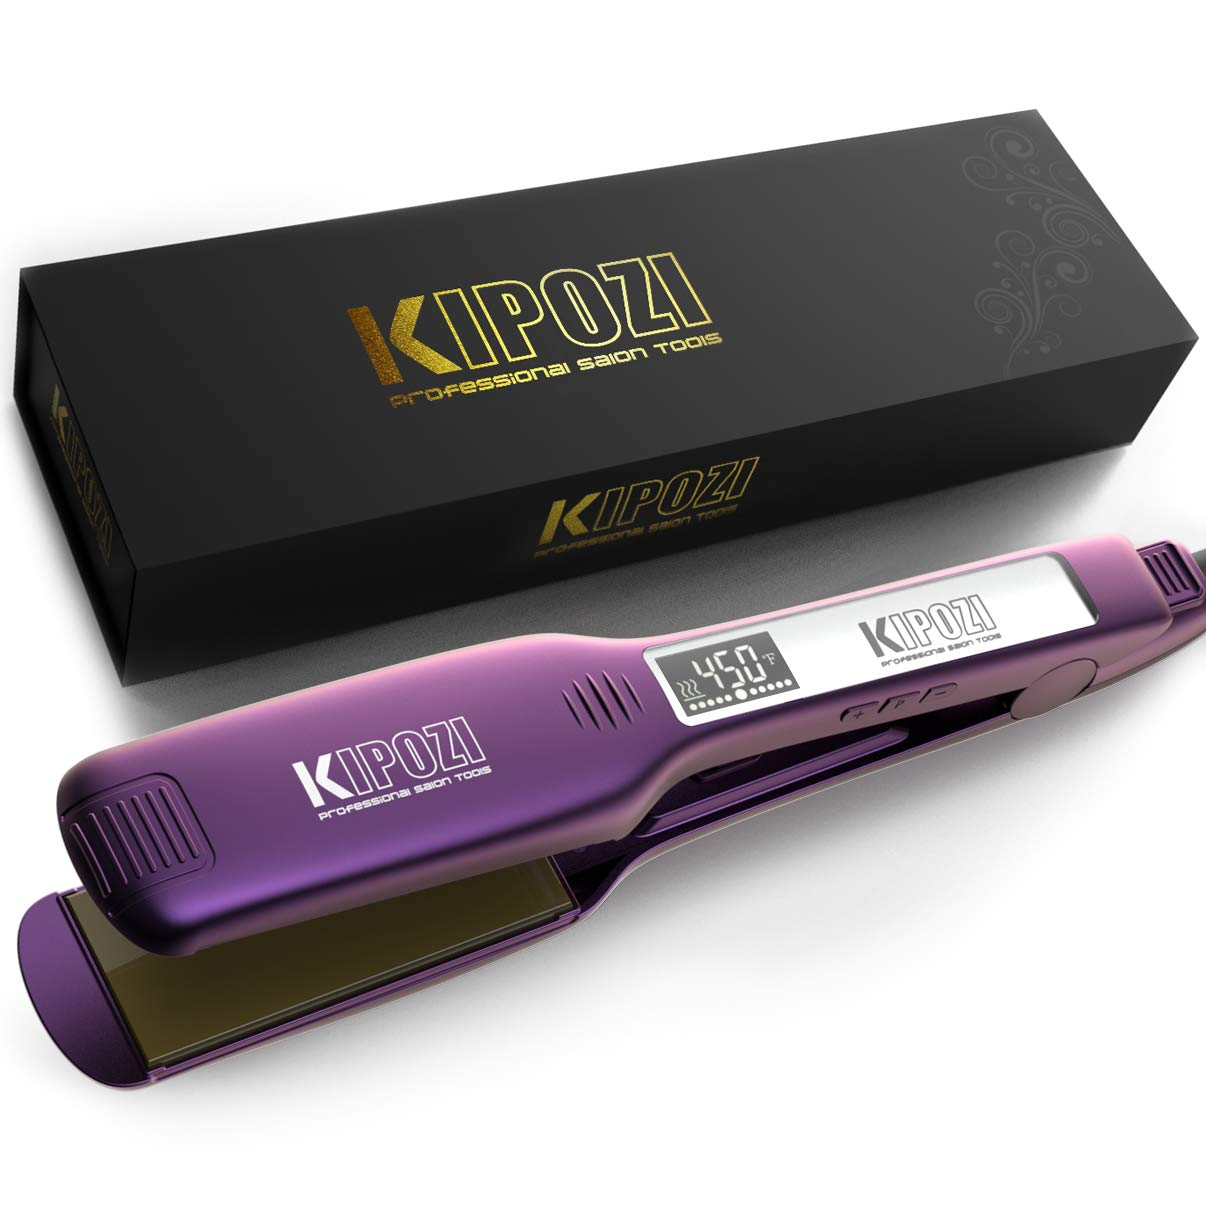 KIPOZI Professional Hair Straightener, 1.75 Inch Titanium Flat Iron for Hair Dual Voltage Flat Iron, Wide Flat Iron for Thick Hair with Adjustable Temperature & Digital LCD Screen, Purple by KIPOZI